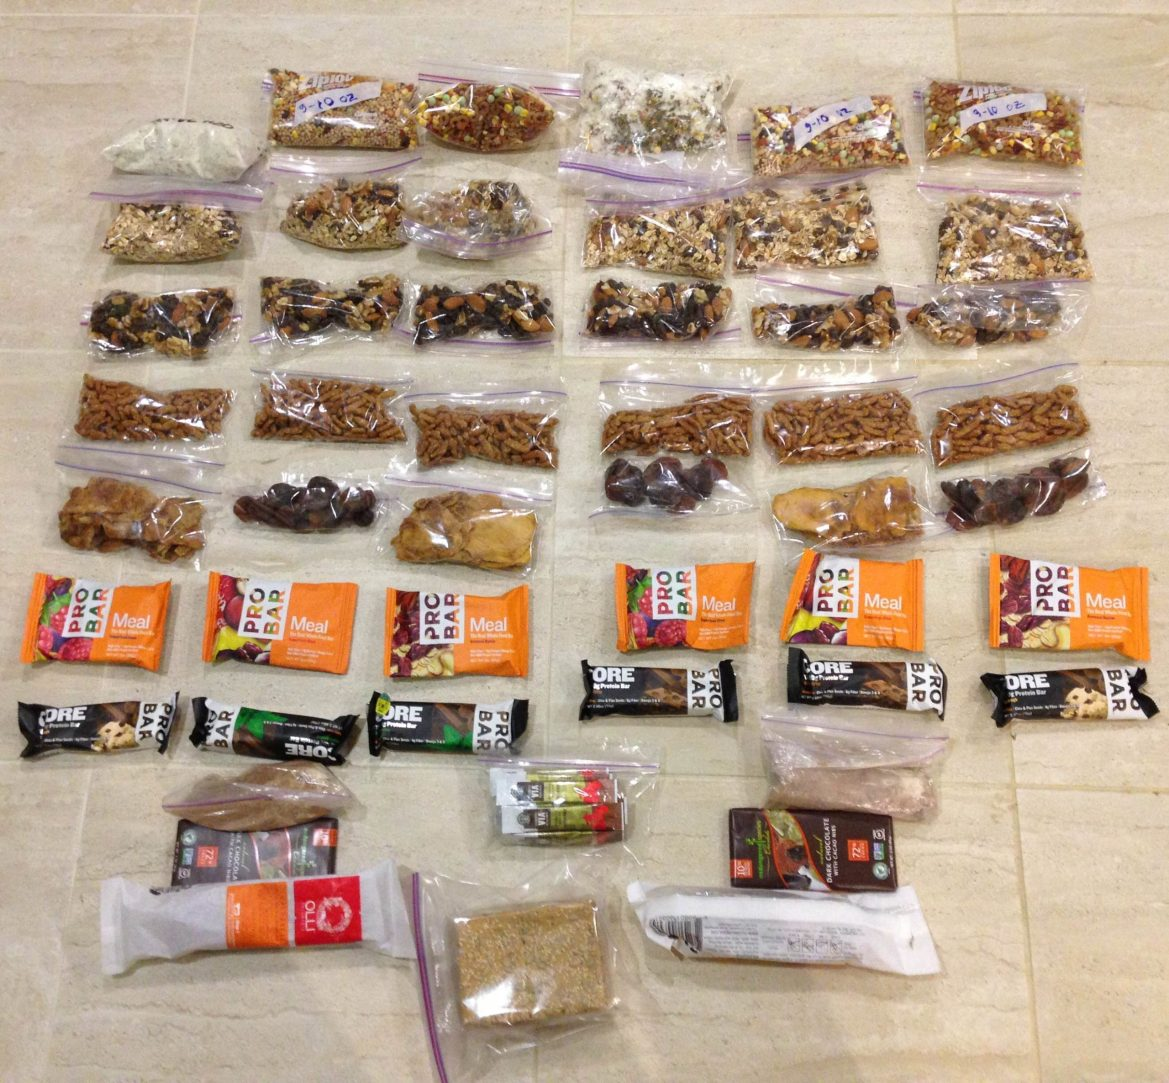 Six days worth backpacking food lies in rows on the floor. Dehydrated meals, trail mix, and dried fruit have been repackaged into small ziplock pages. The allotment also contains bars, instant coffee, and two bars of chocolate.